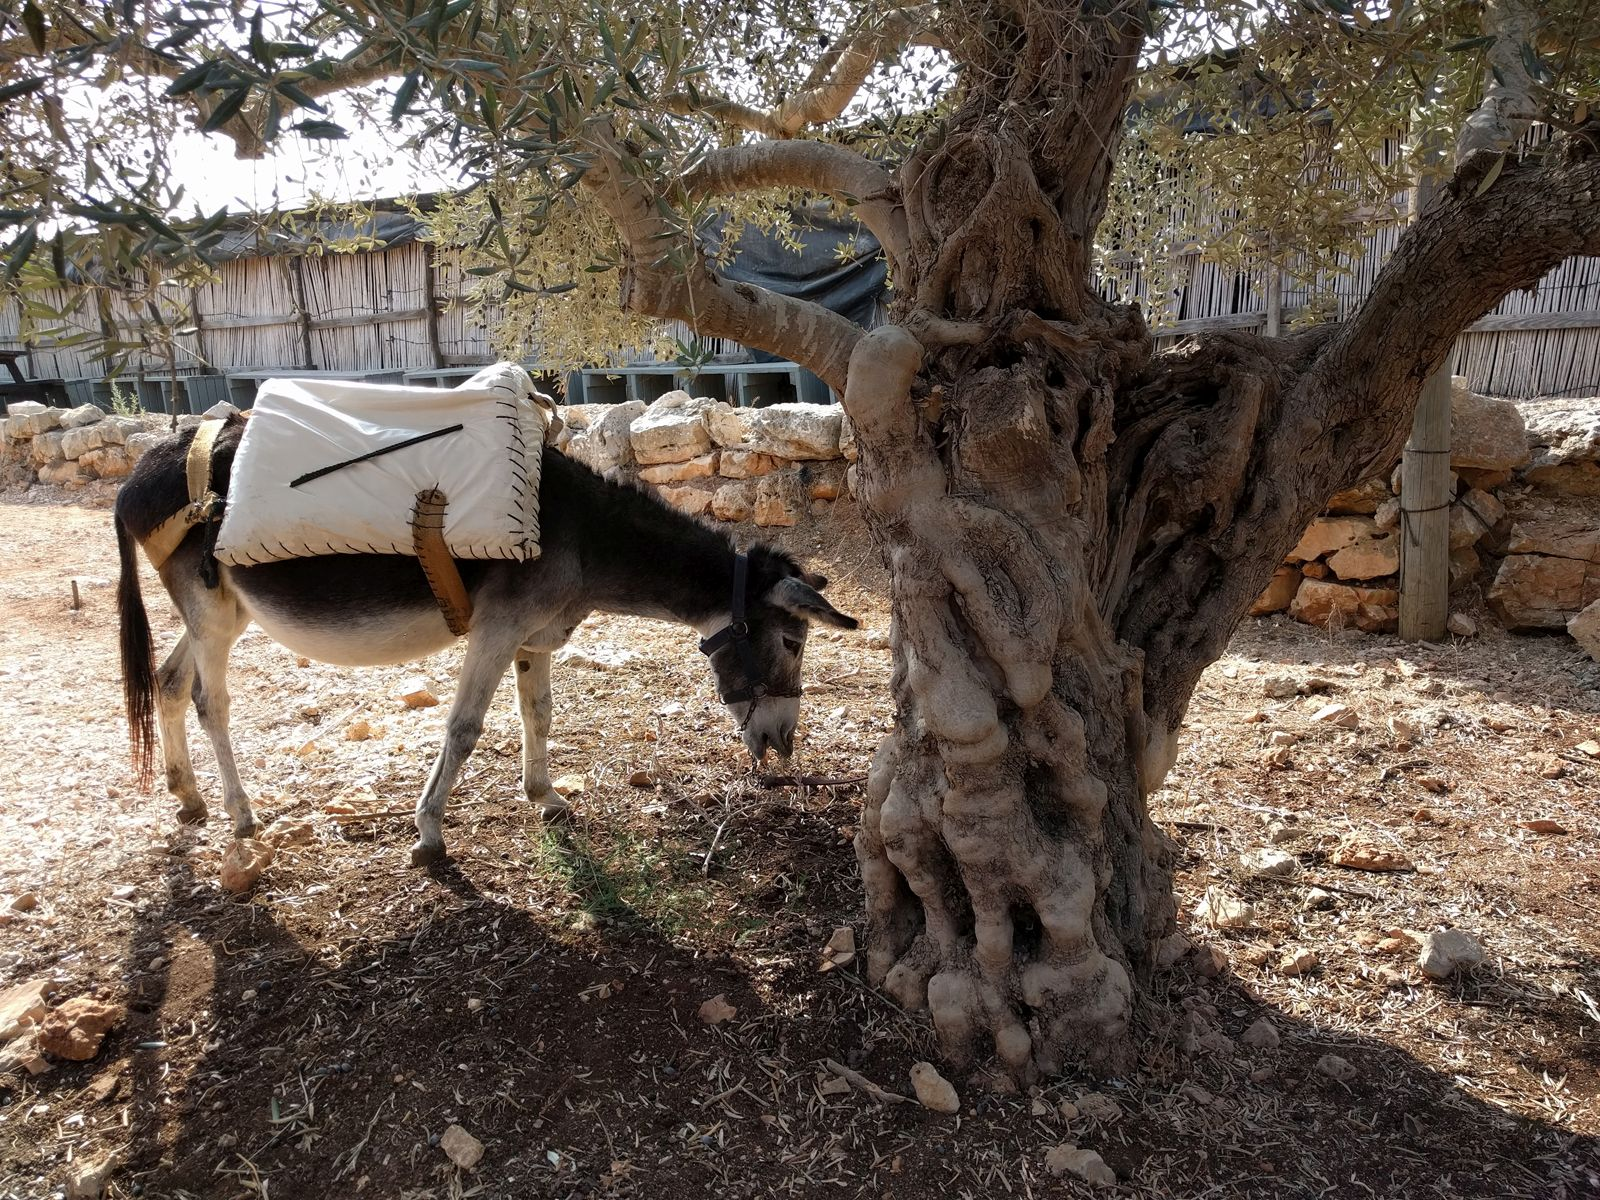 A resident donkey at Kfar Kedem. Photo by Viva Sarah Press